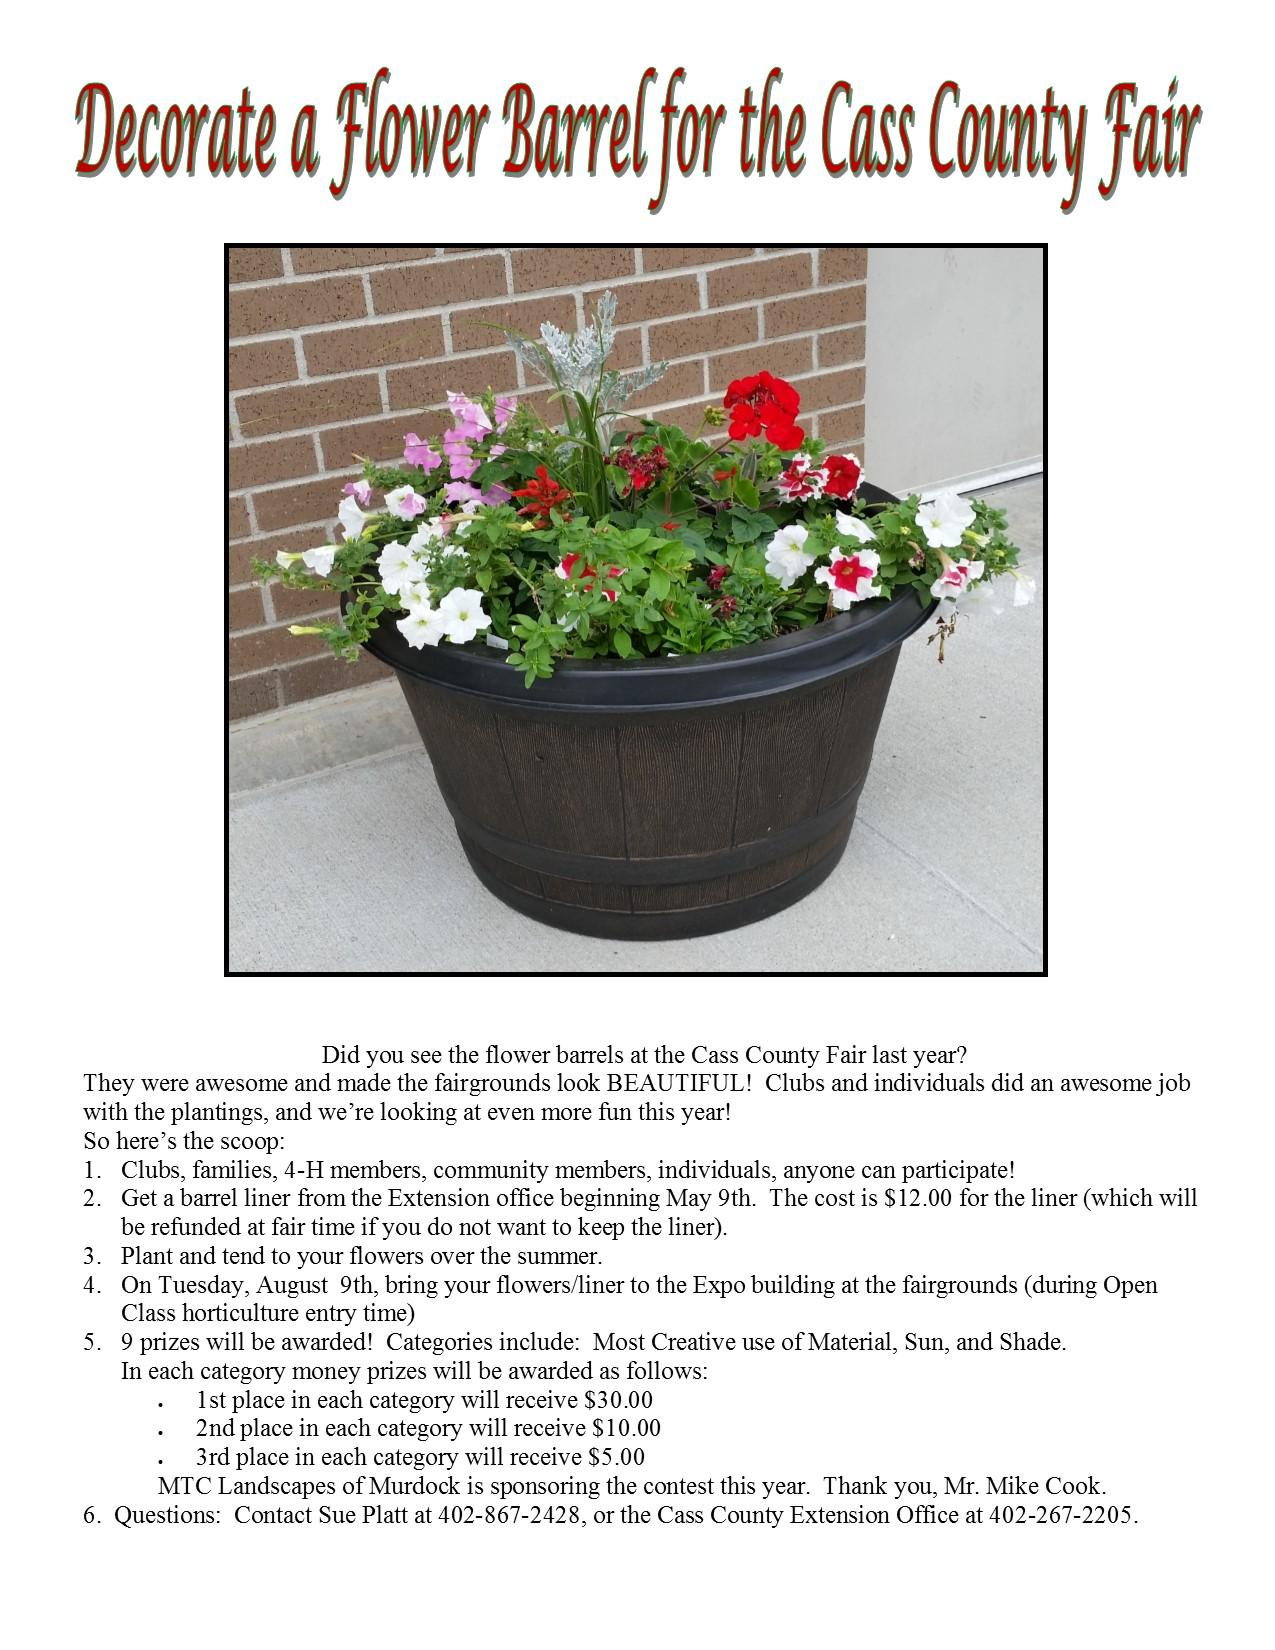 2016 Decorate a flower barrel for the Cass County Fair